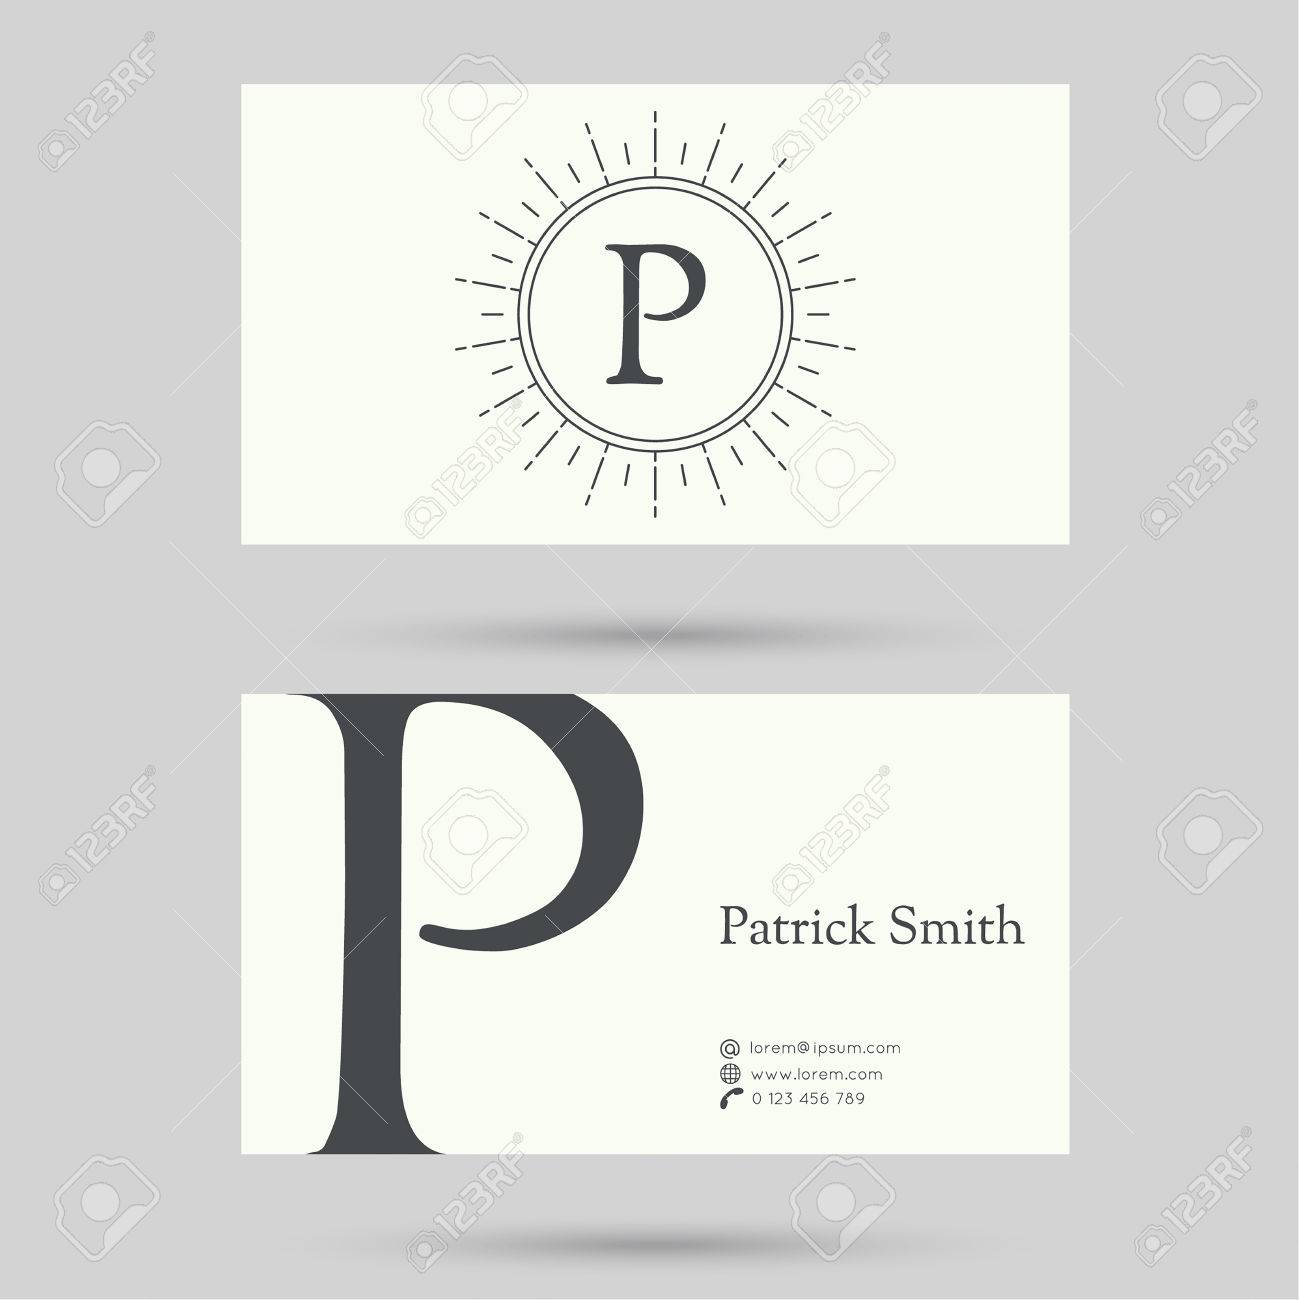 Trendy business card template with vintage hipster banners trendy business card template with vintage hipster banners insignias radial sunbusrt flat design colourmoves